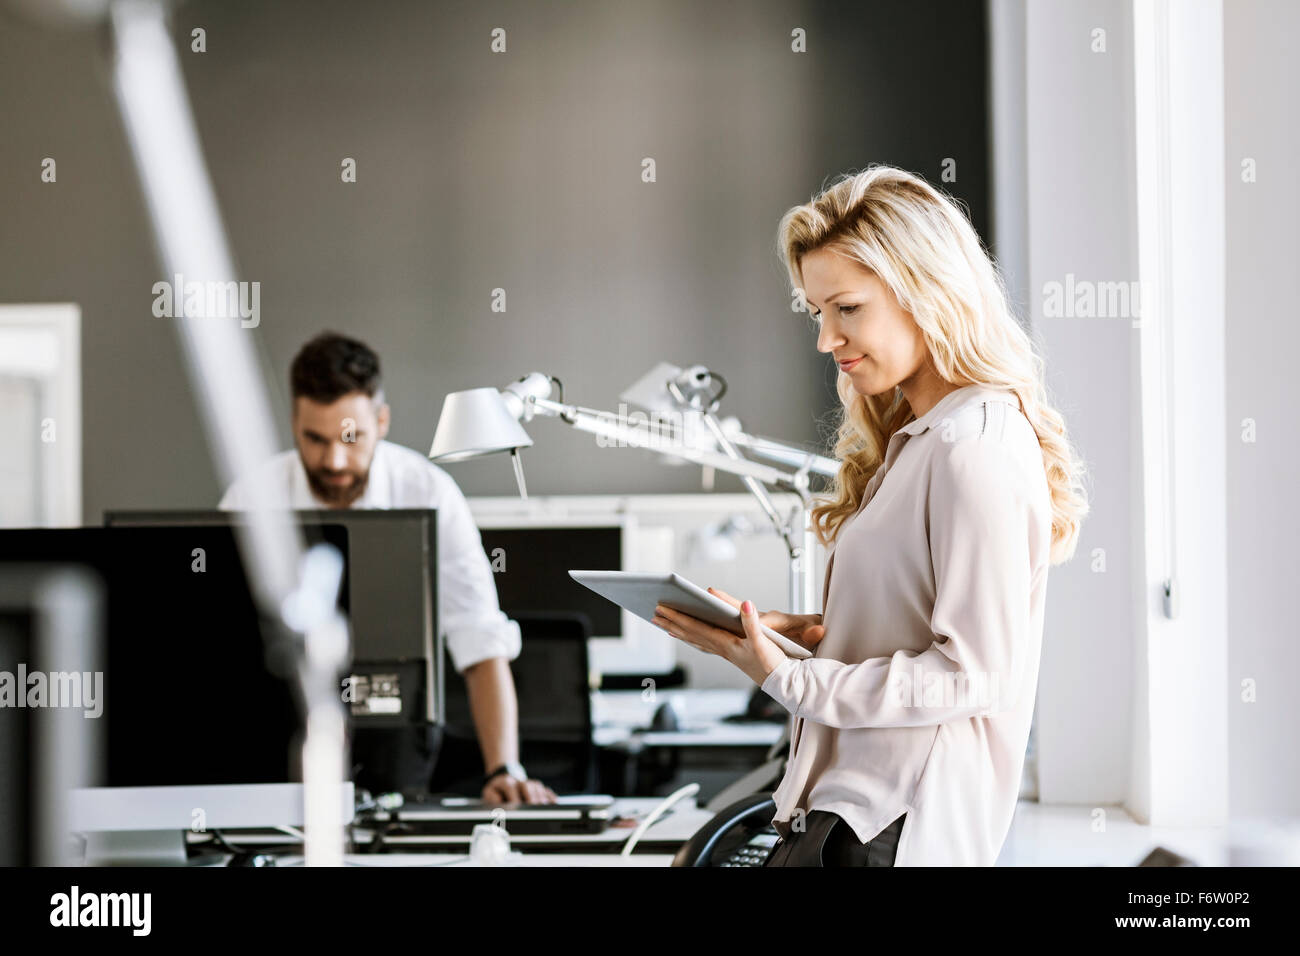 Two colleagues in office with digital tablet and computer - Stock Image